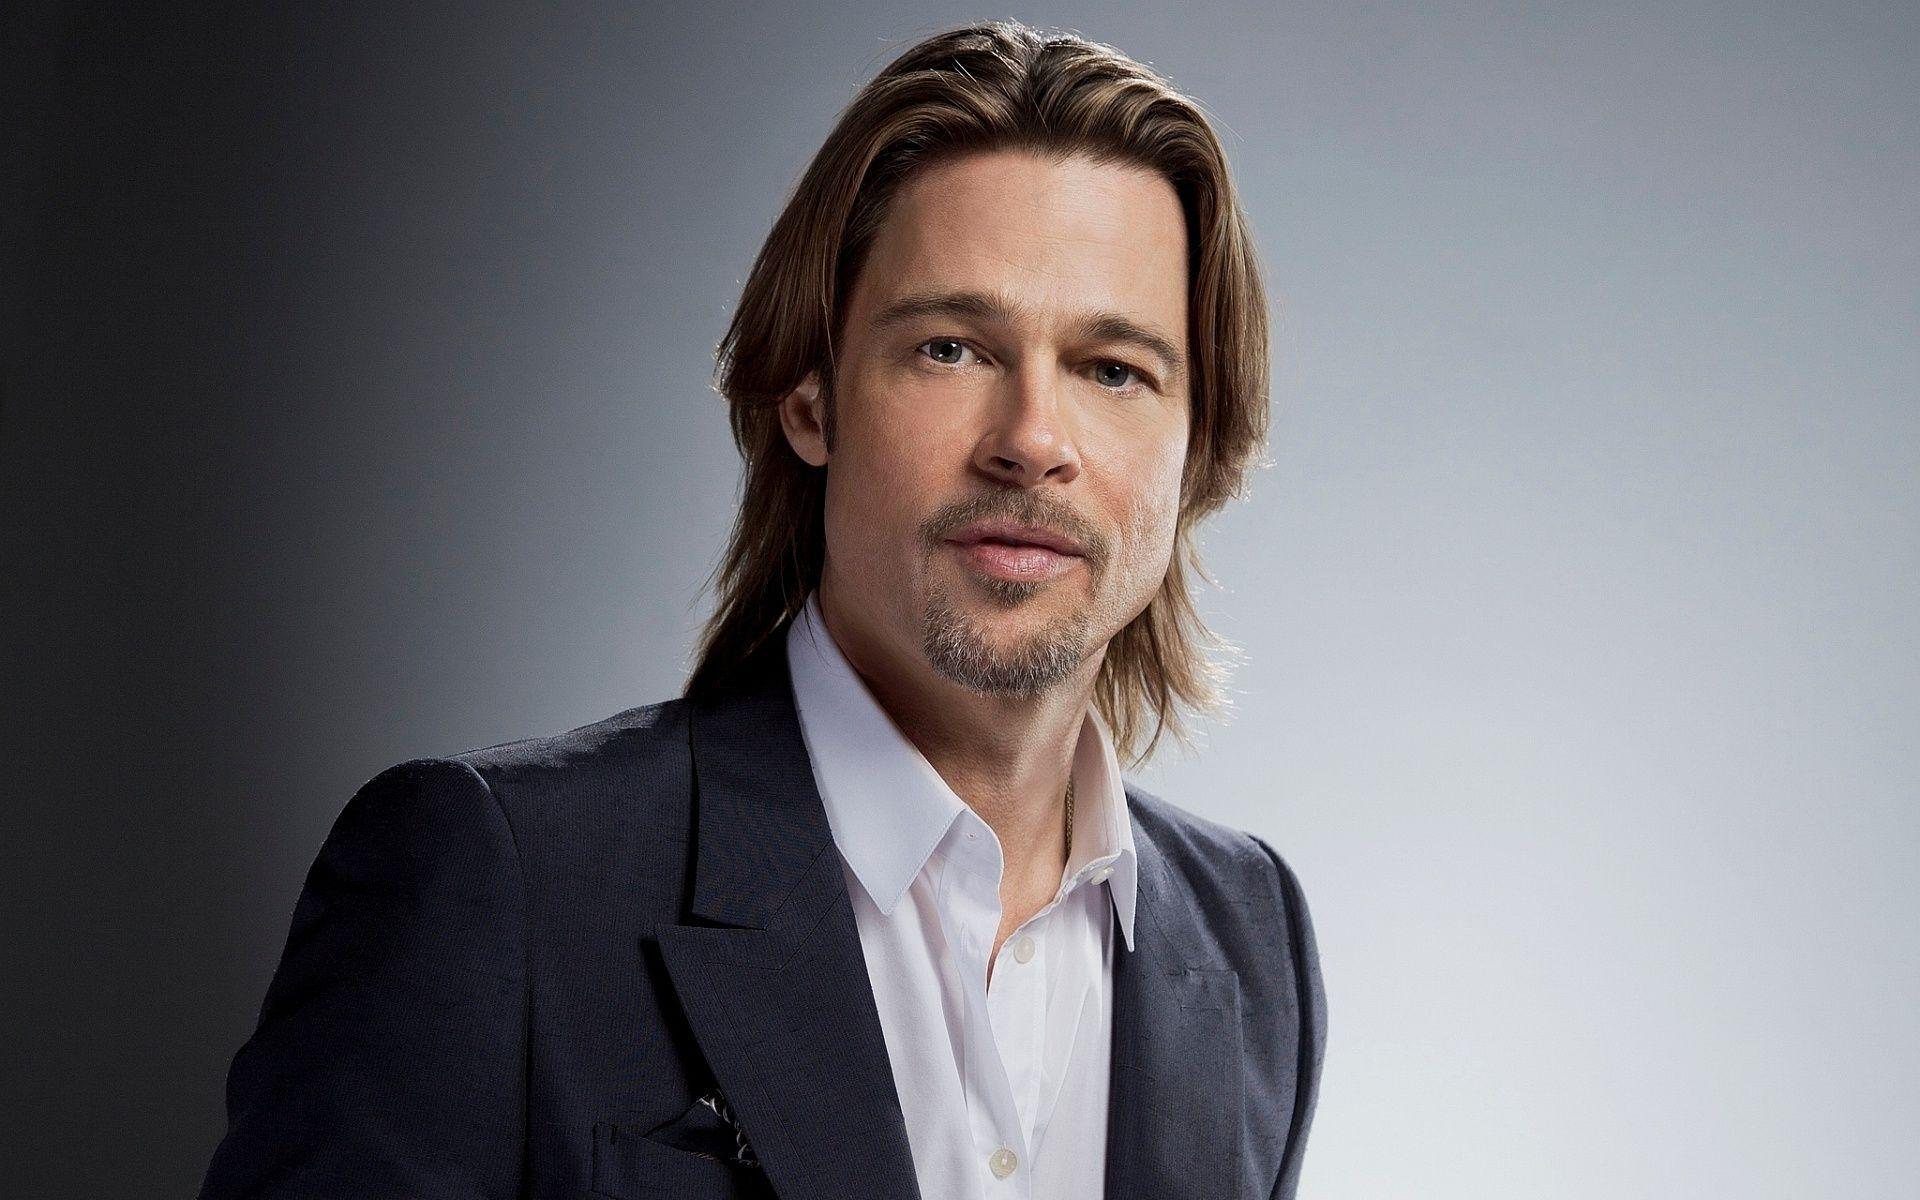 Brad Pitt HD Picture Wallpaper - Celebrities Powericare.